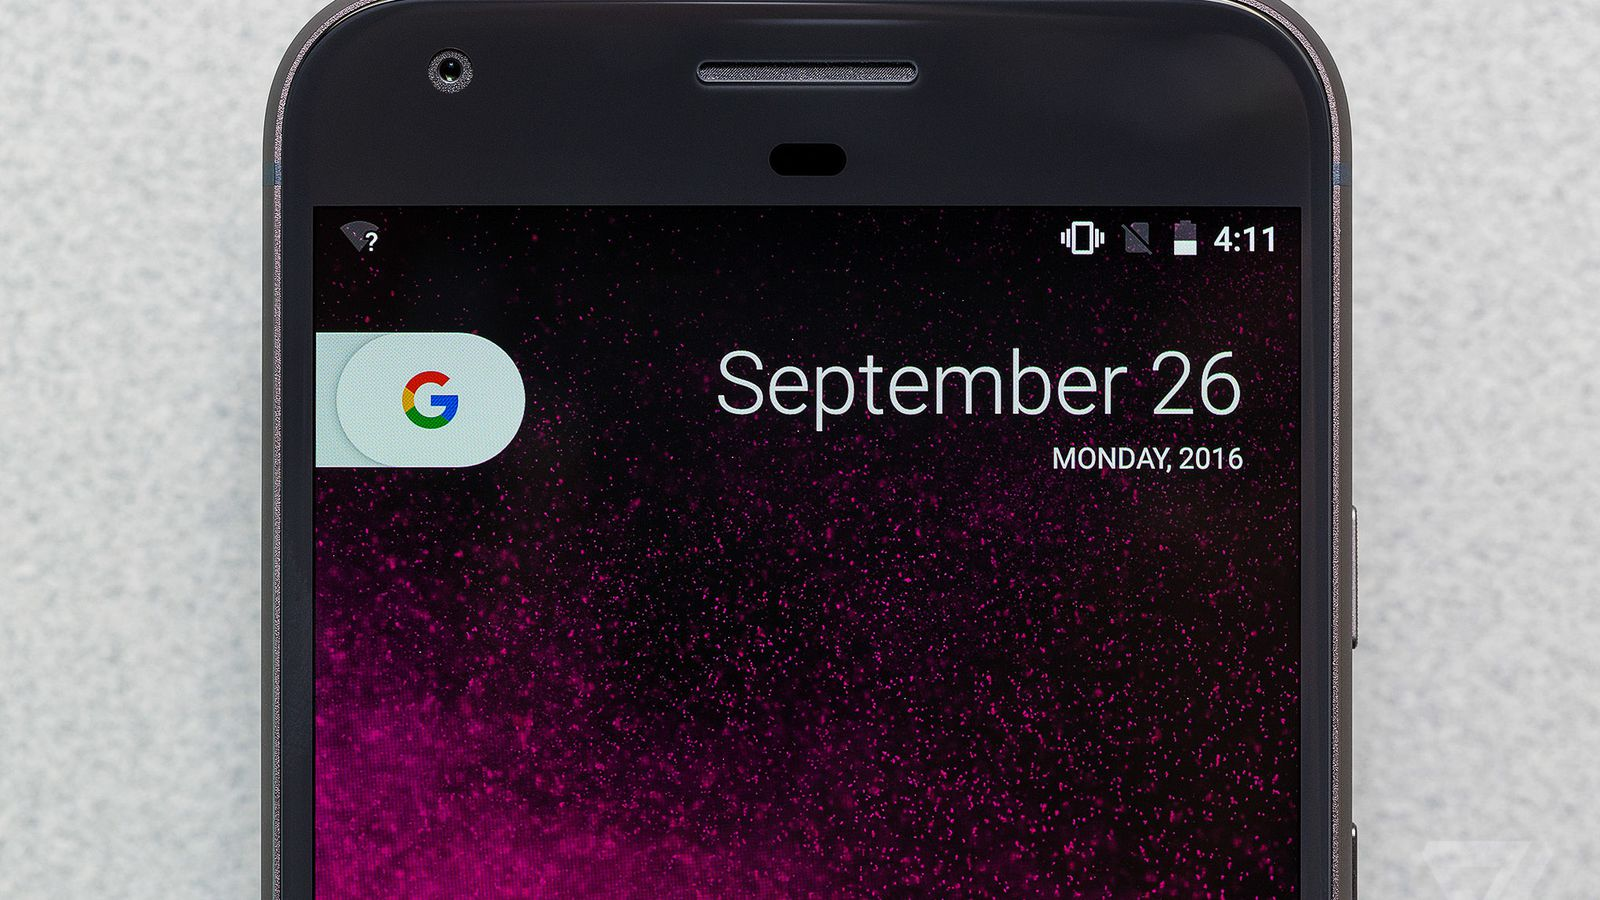 Google Announces Last Security Update Dates for Nexus and Android Phones